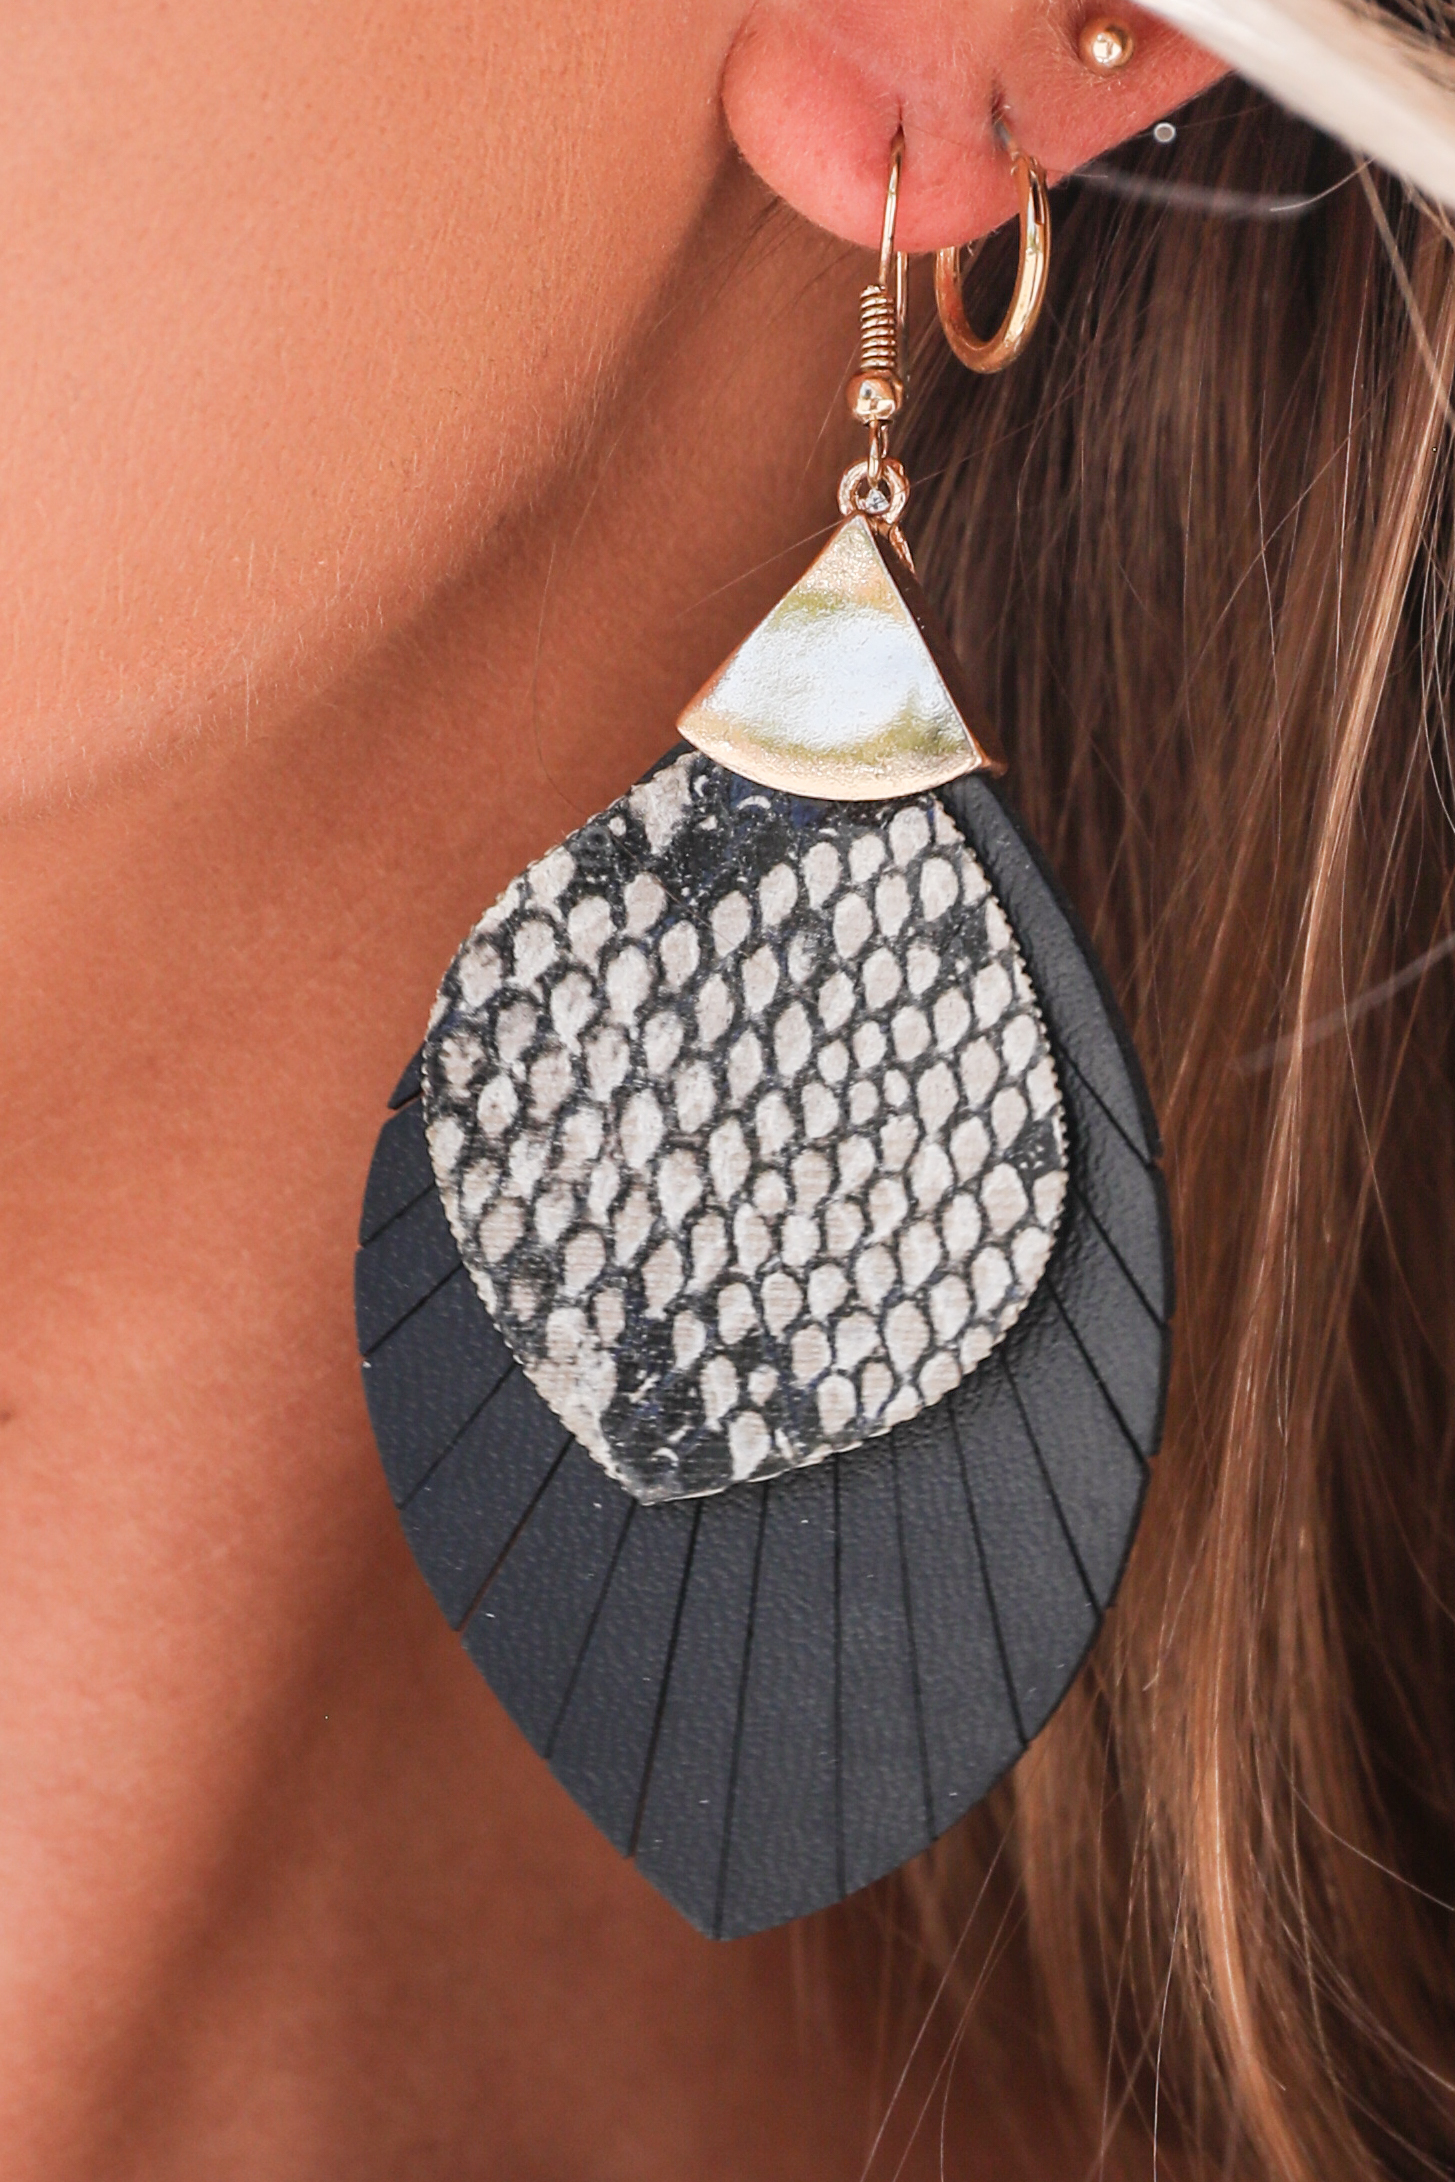 Black Faux Leather Tassel Earrings with Snake Print Detail